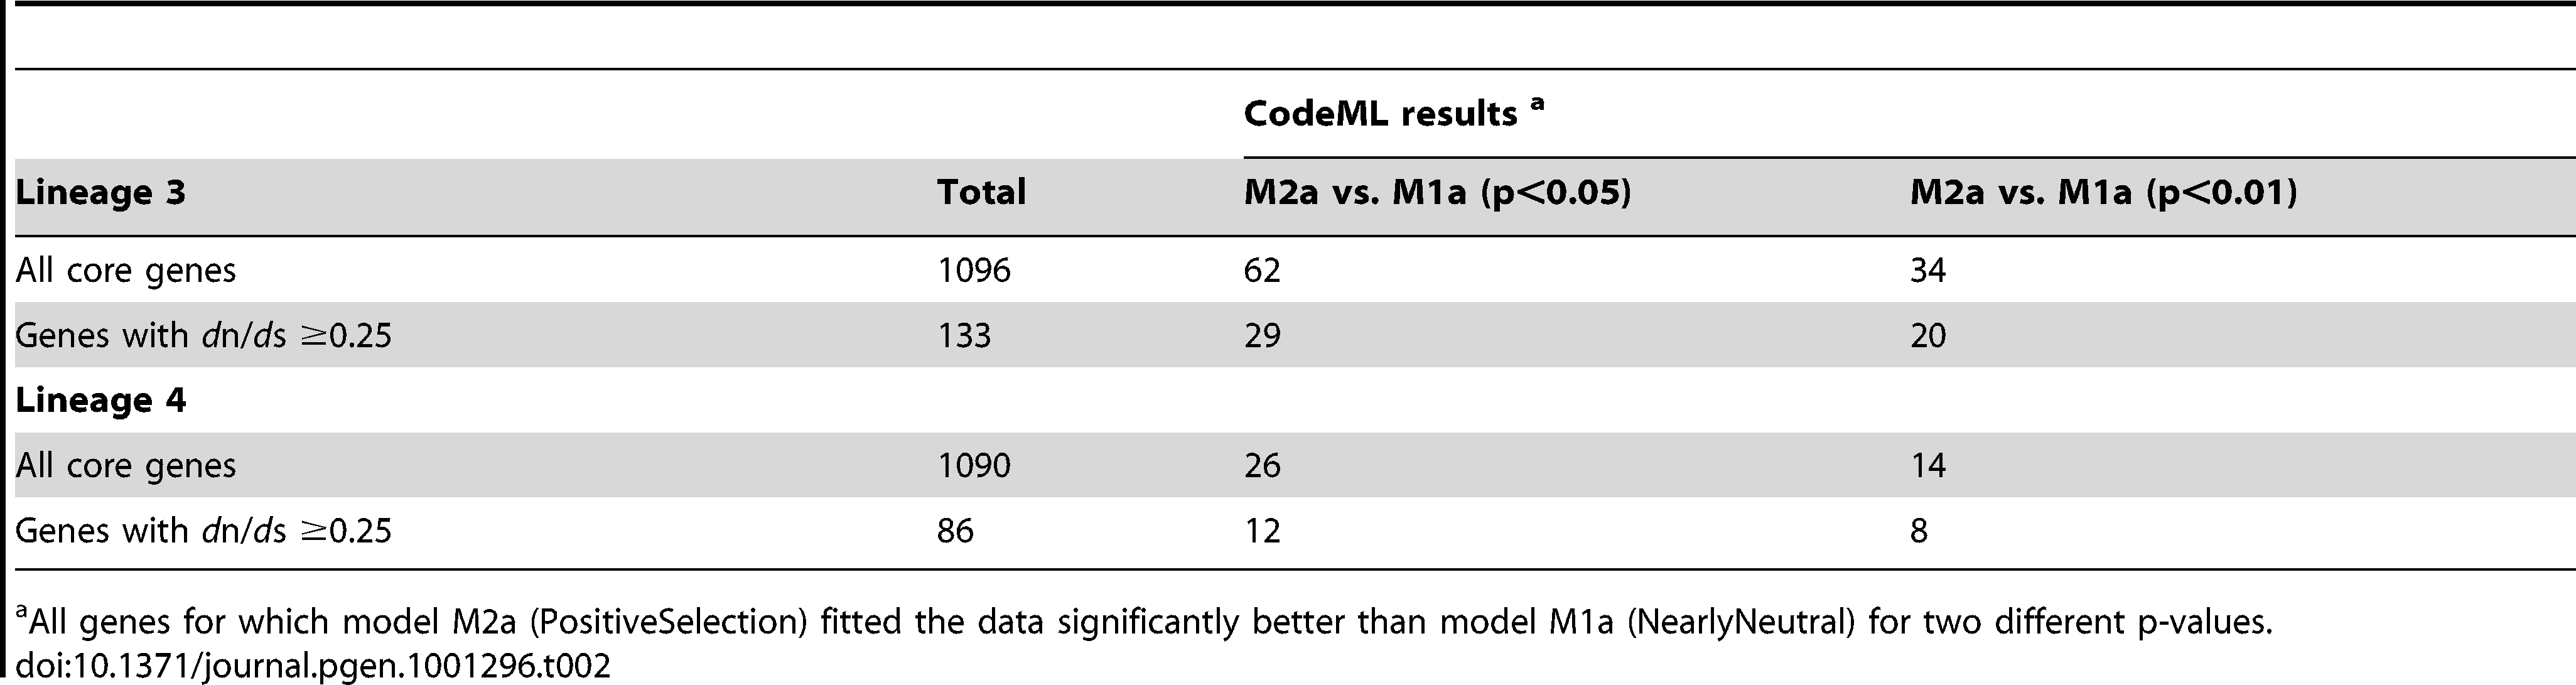 Number of genes revealing significant positive selection in the CodeML analysis for lineage 3 and lineage 4.